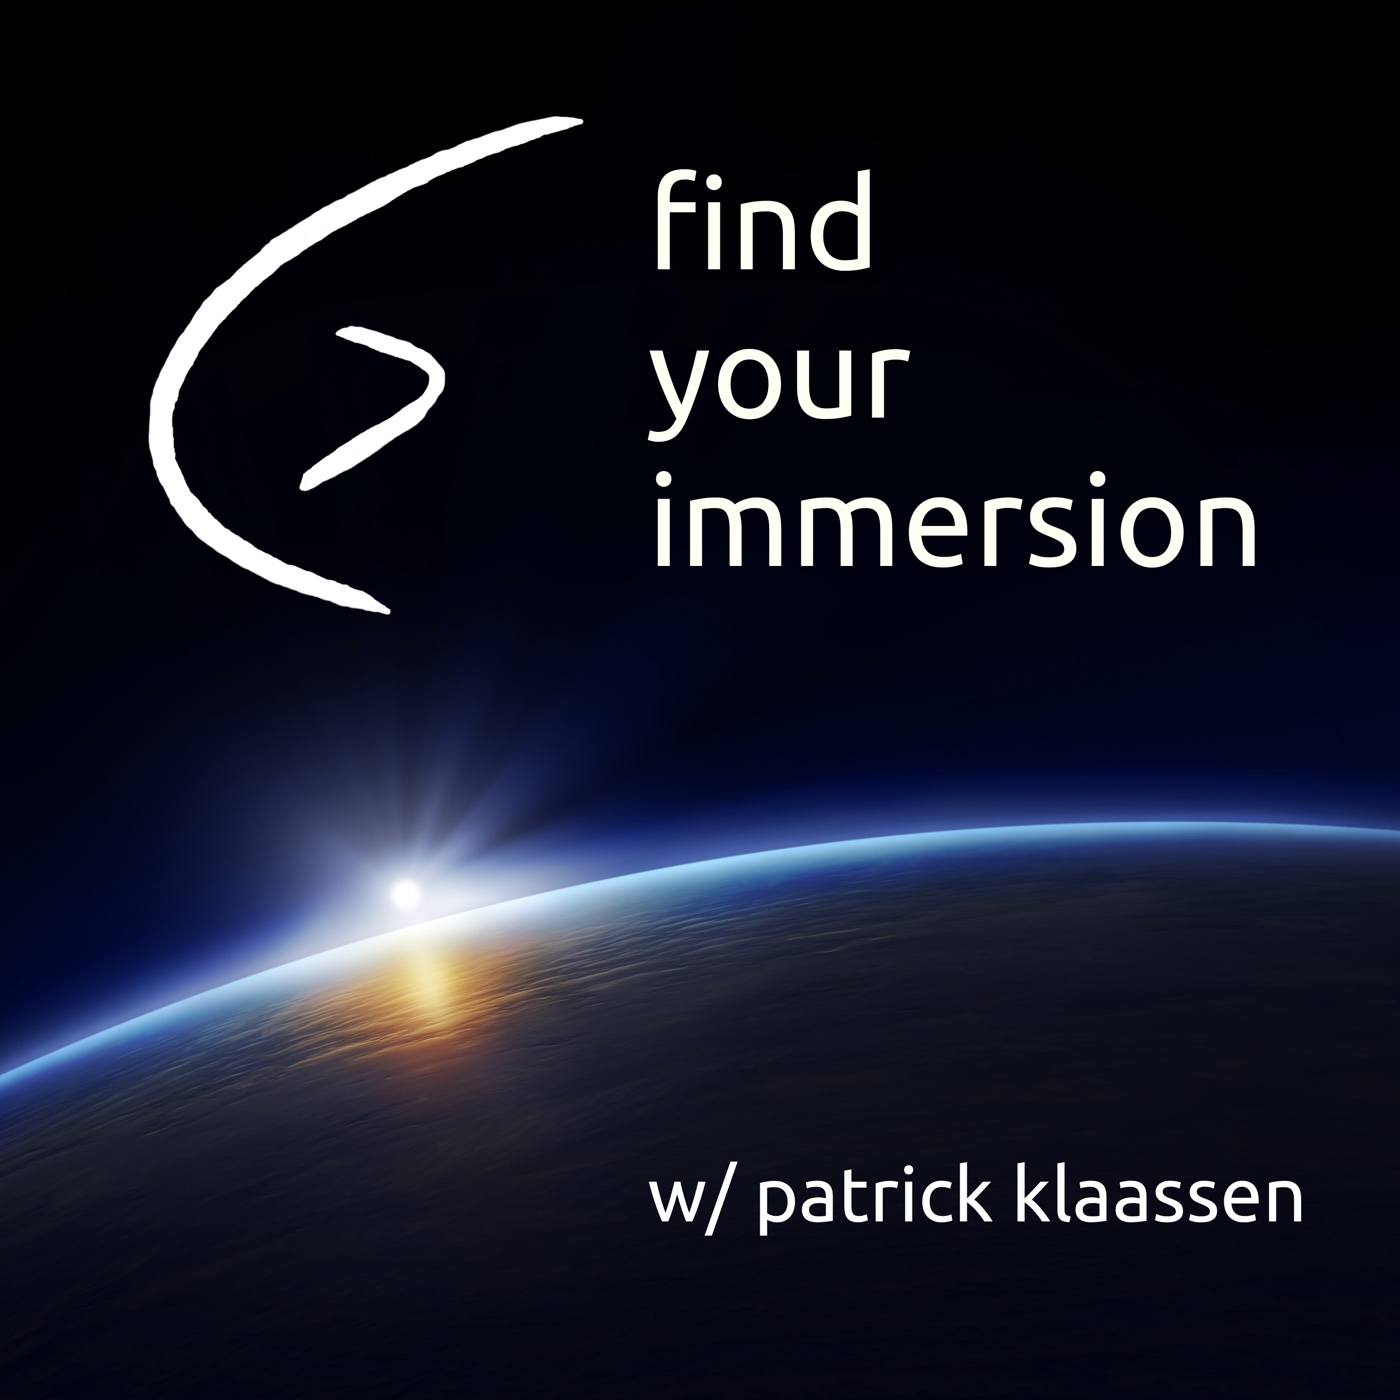 Find Your Immersion